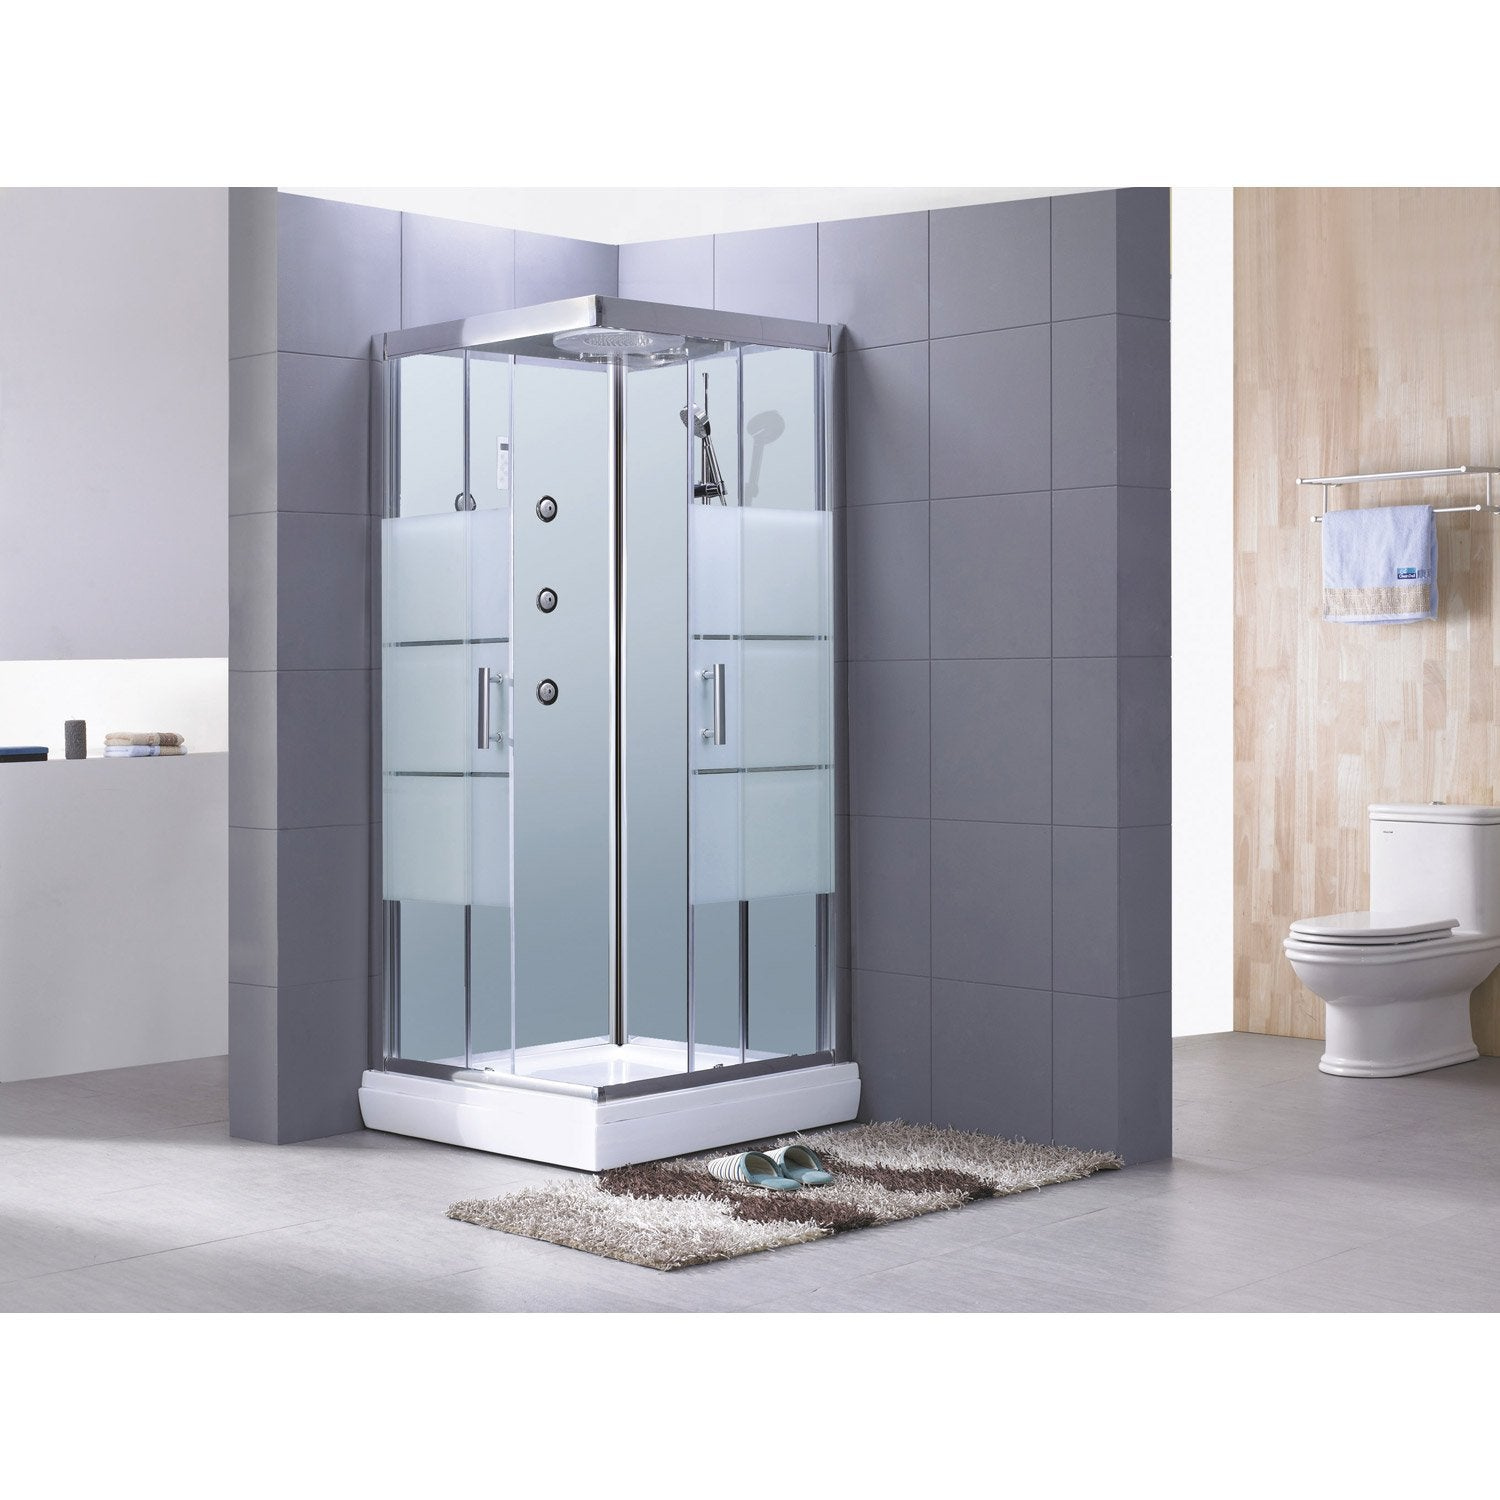 cabine de douche carr 80x80 cm optima2 blanche leroy merlin. Black Bedroom Furniture Sets. Home Design Ideas